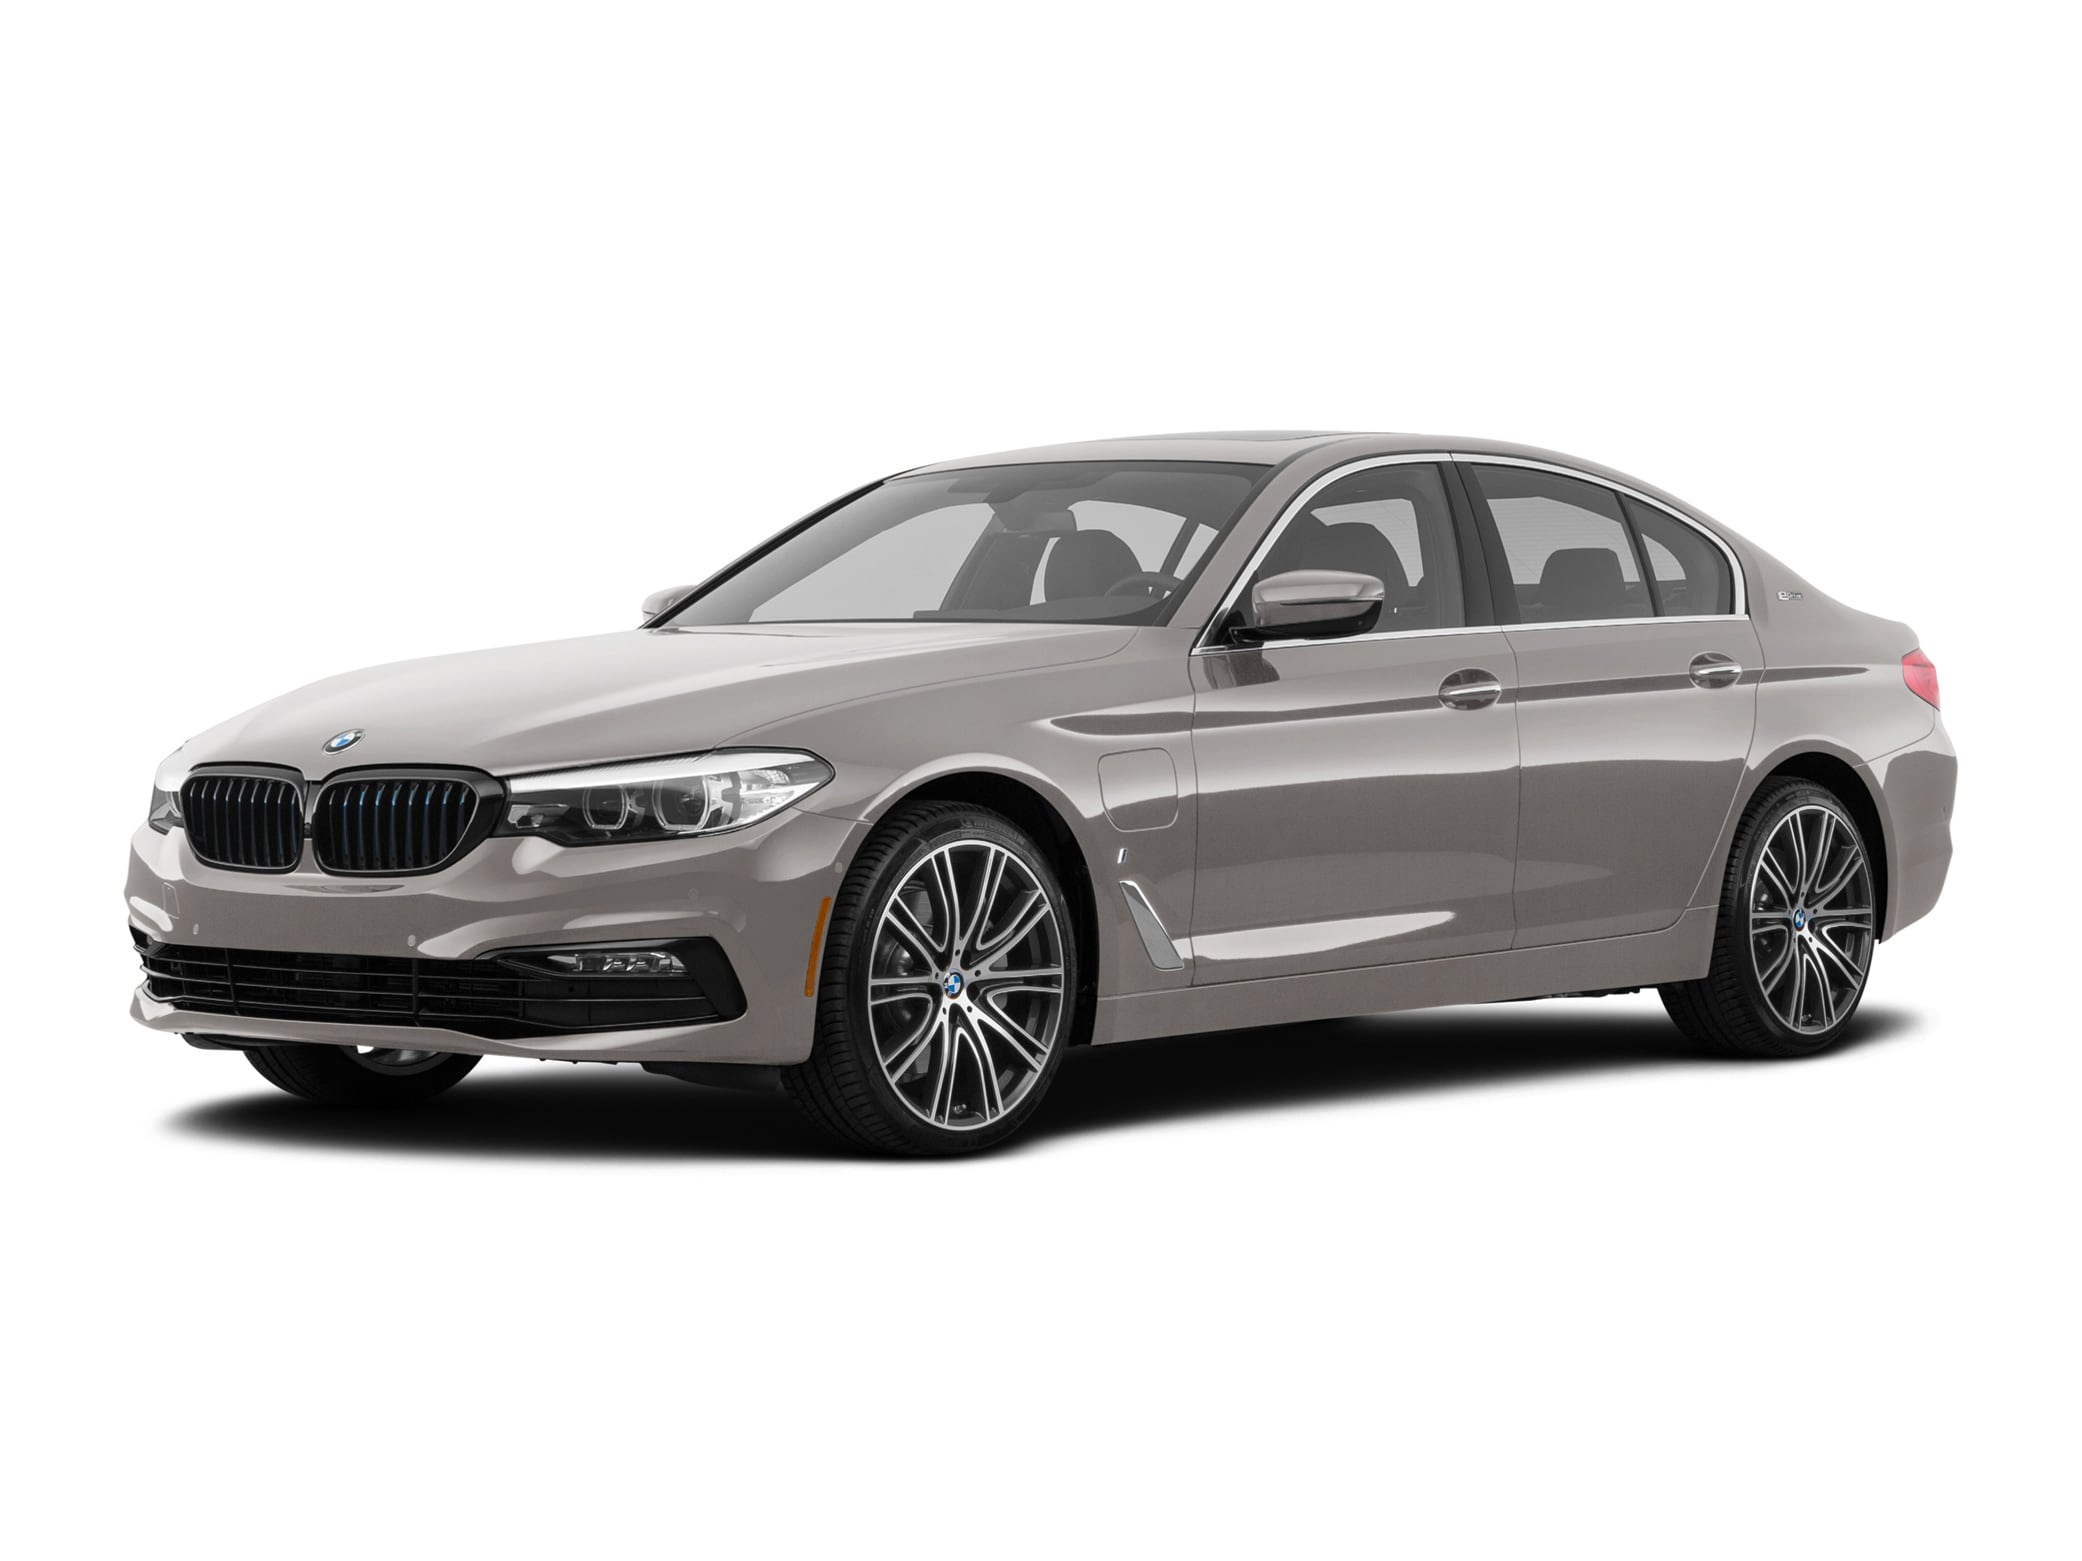 2019 BMW 530e xDrive iPerformance Sedan Hanover, NH